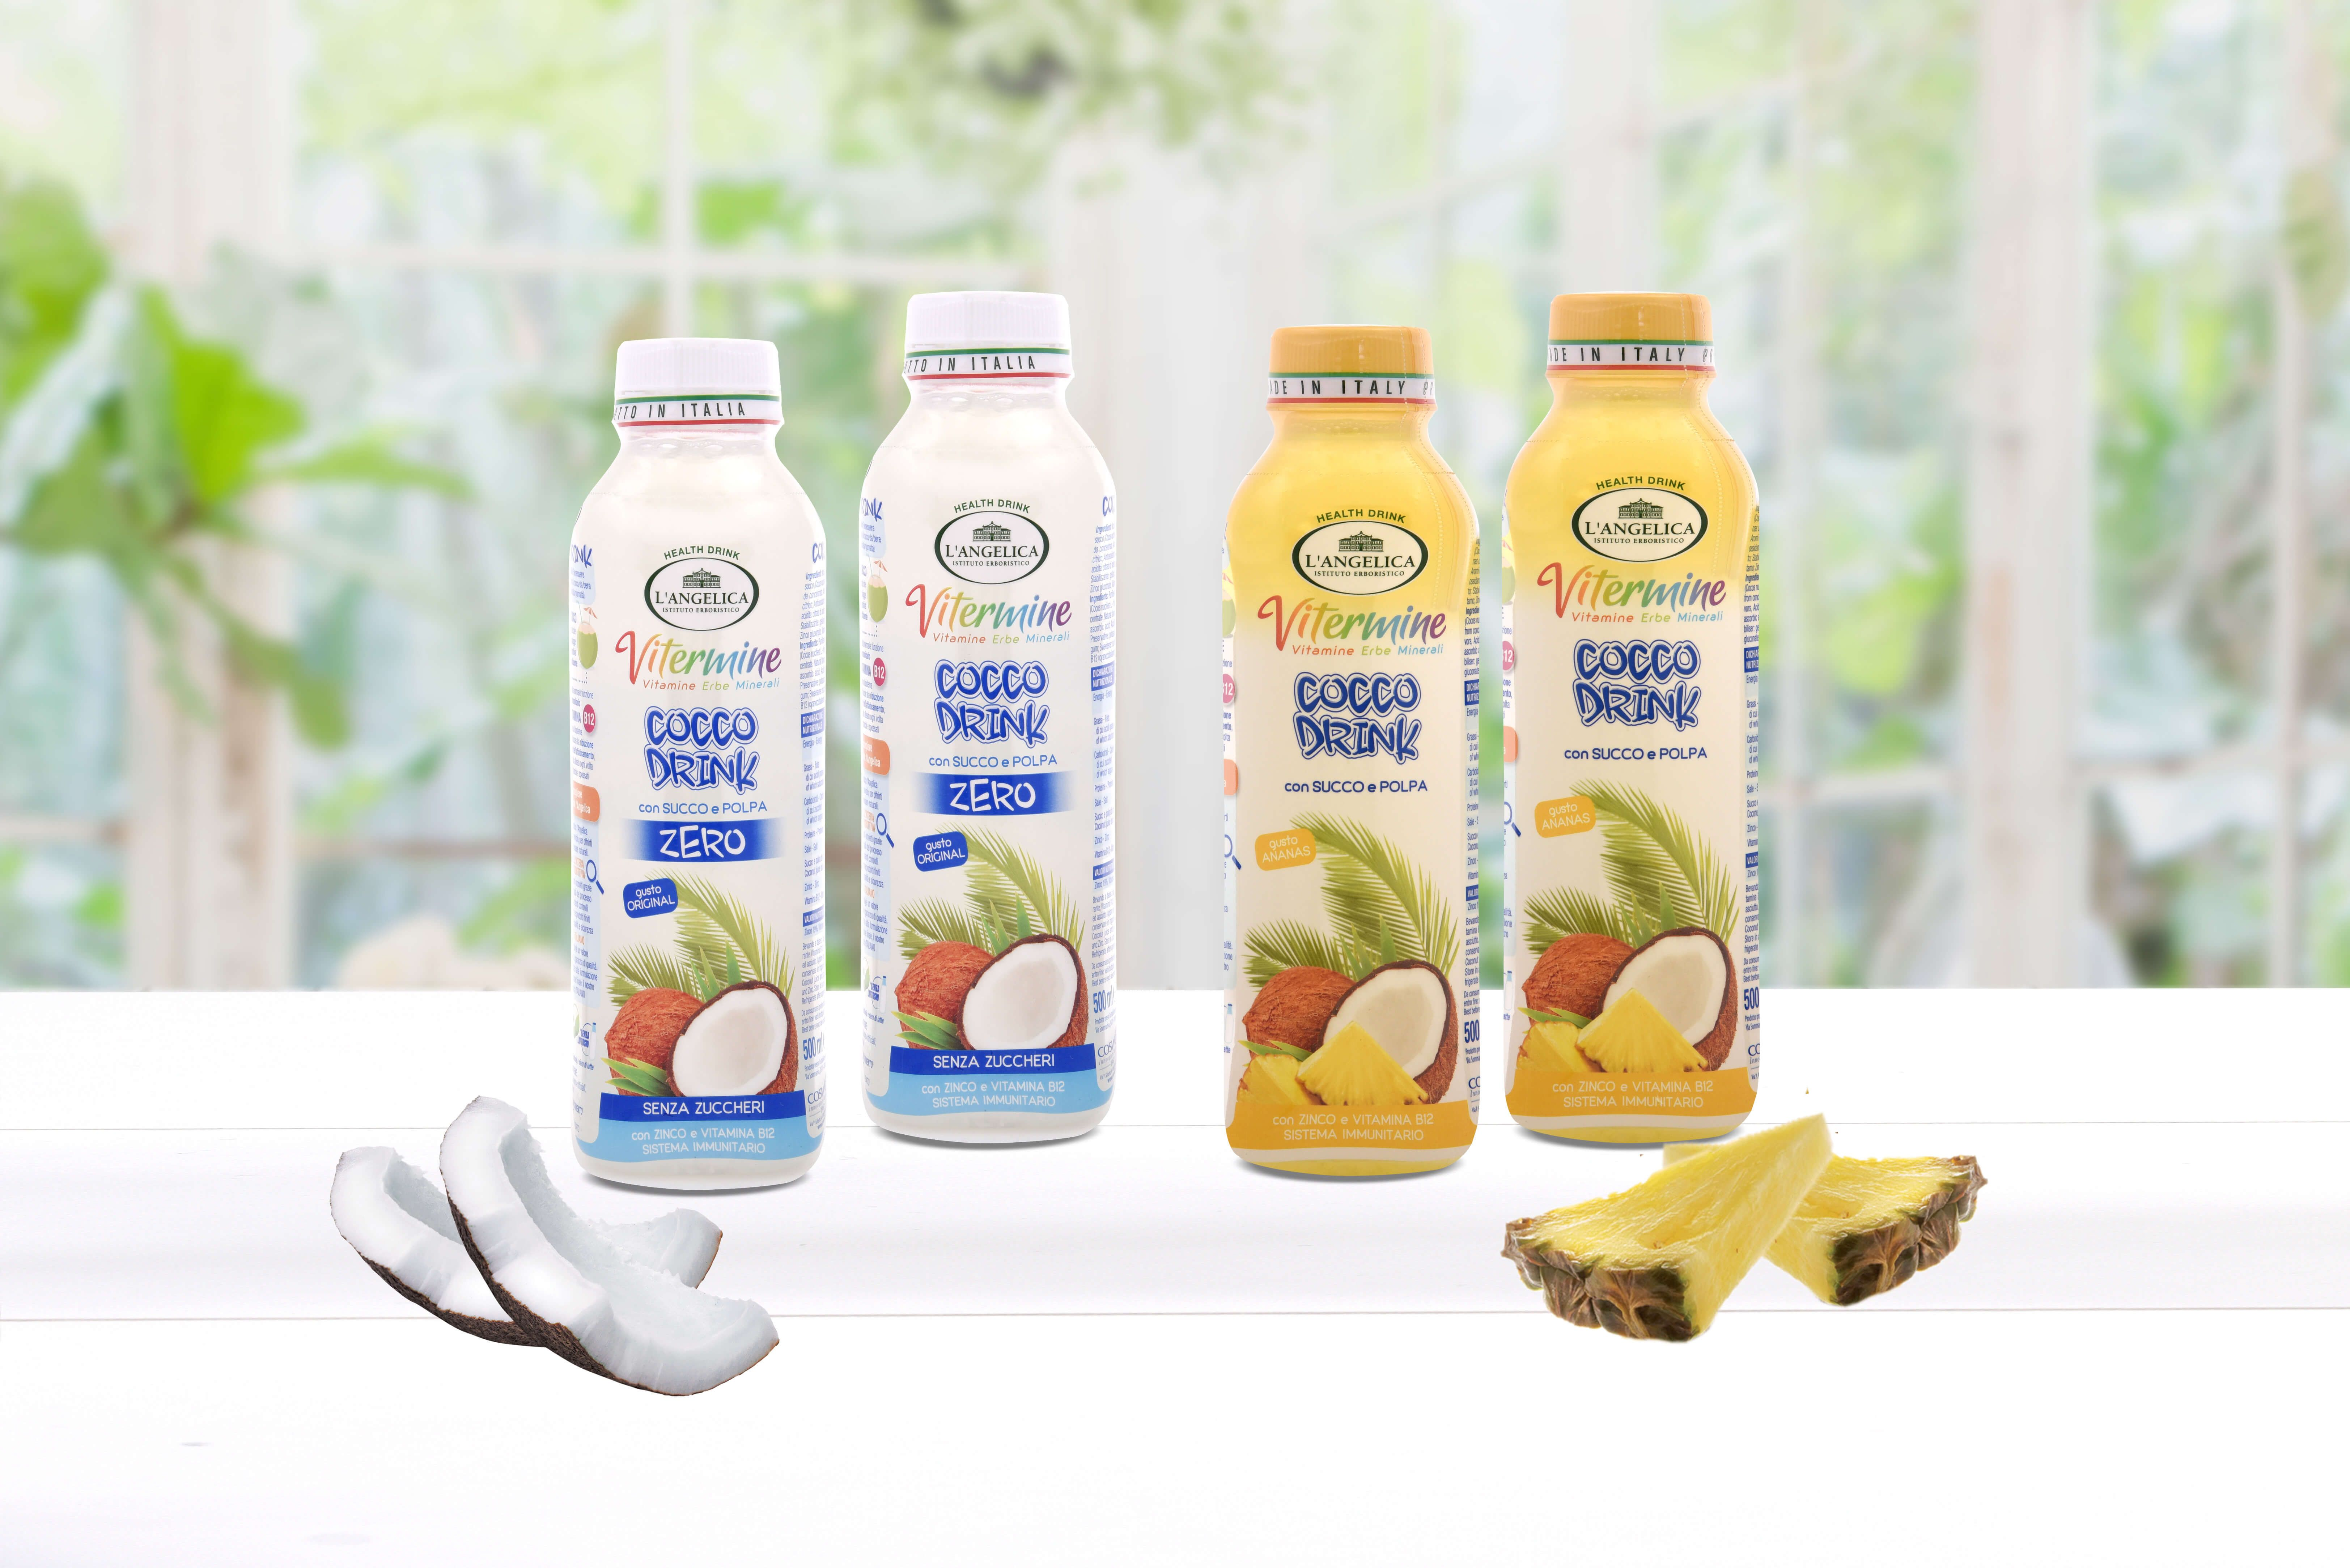 Kit Cocco Drink